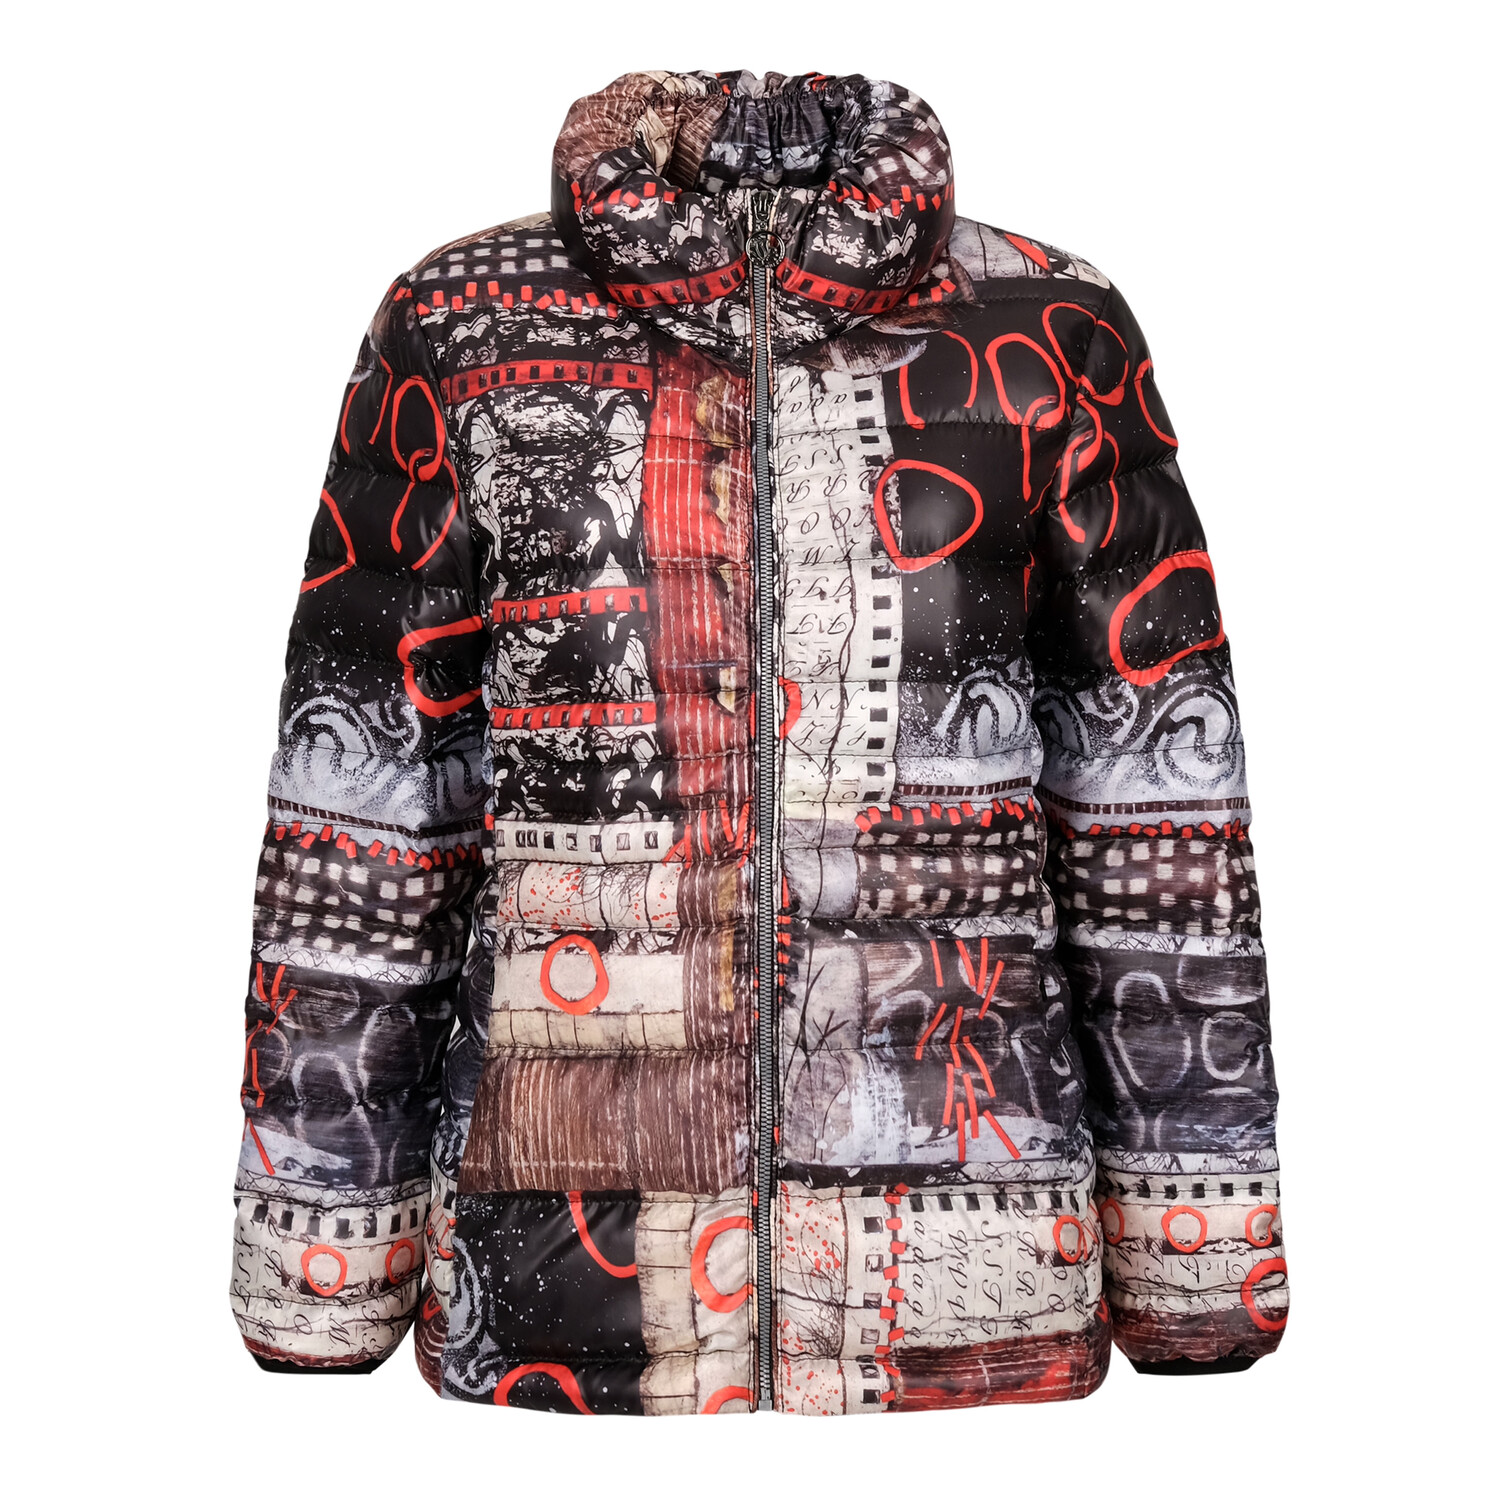 Red and Black Print Jacket